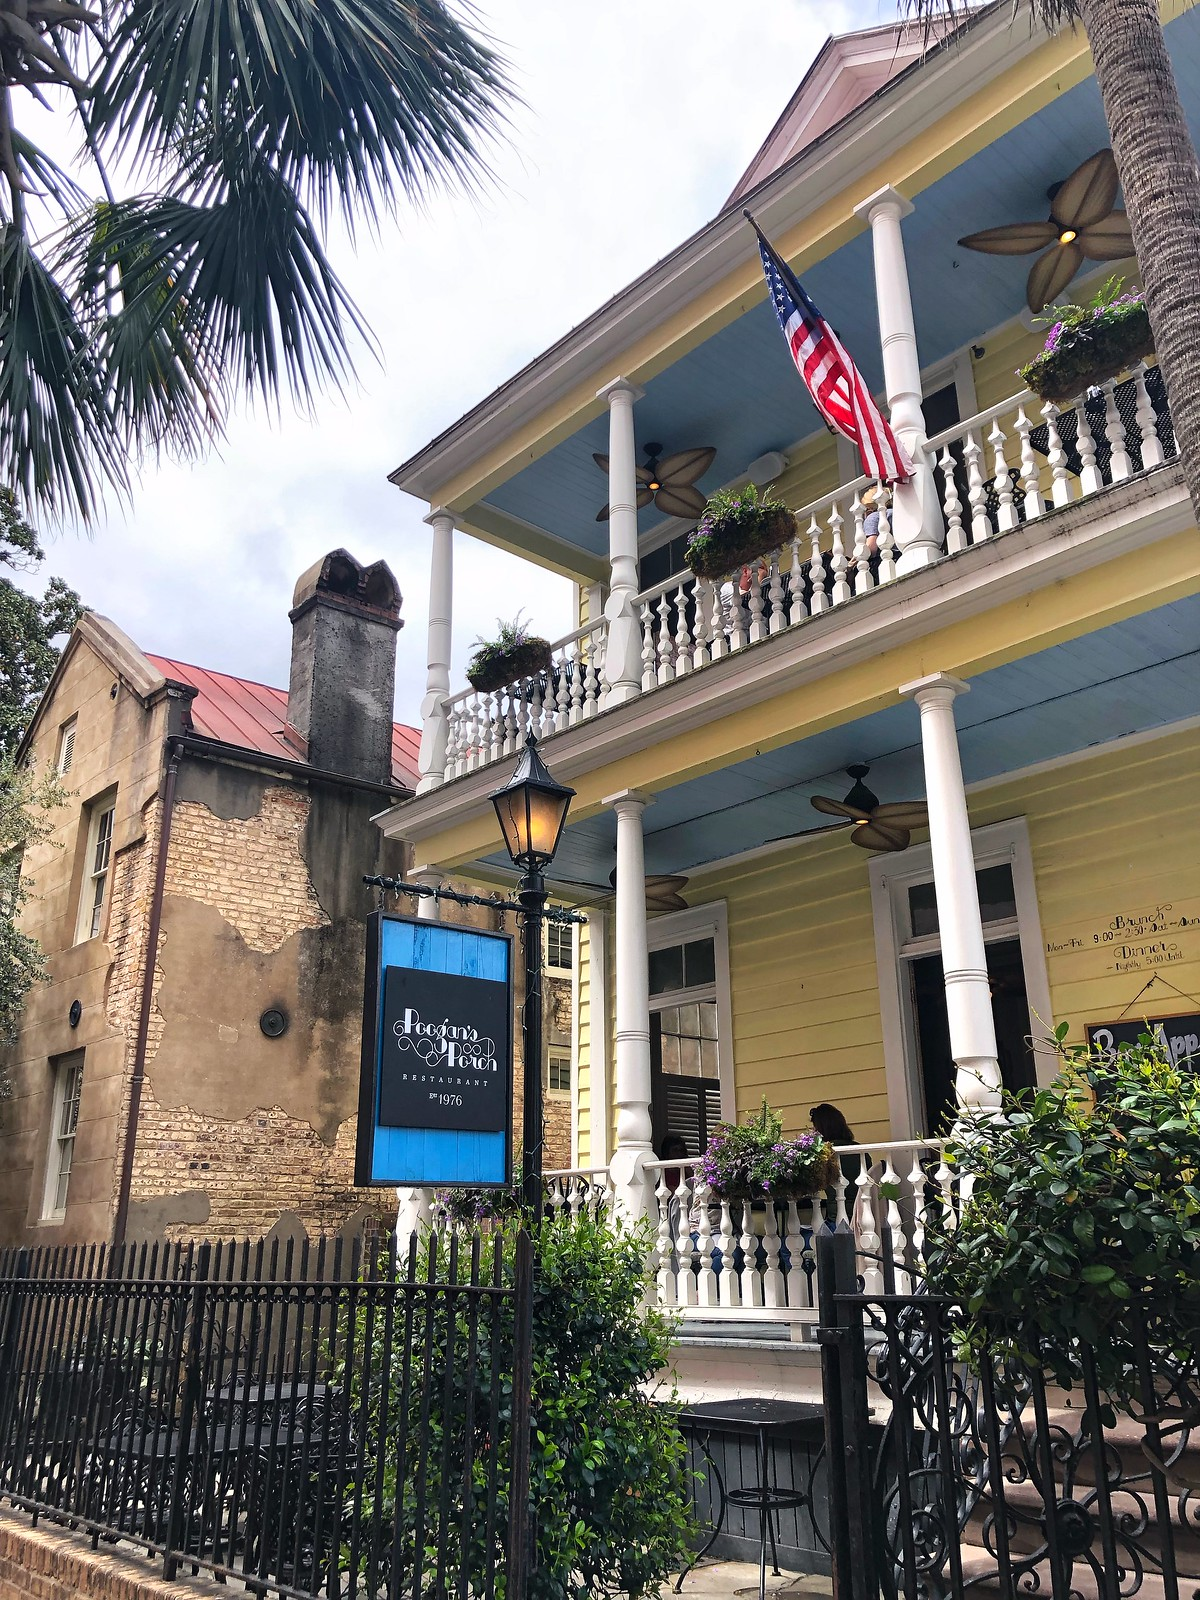 Poogan's Porch Restaurant | Where to Eat in Charleston | Best Food in Charleston | First Timer's Guide to 3 Days in Charleston South Carolina | What to do in Charleston | Charleston Travel Guide | Best Things to do in Charleston | Best Places to visit in Charleston